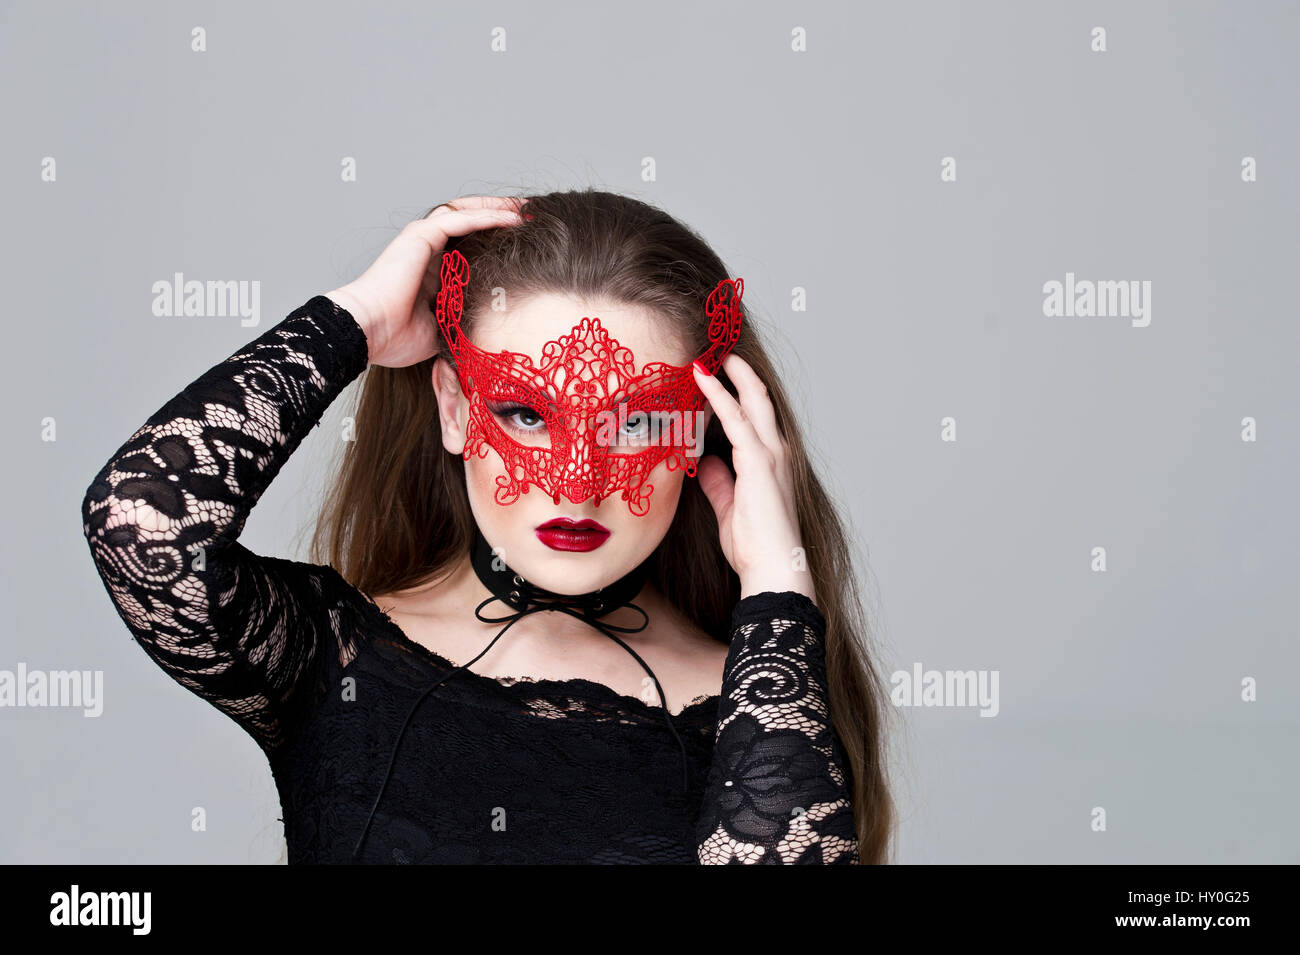 25a69ec8e7 Young woman with long fair hair wearing a red lace mask and a black dress  with